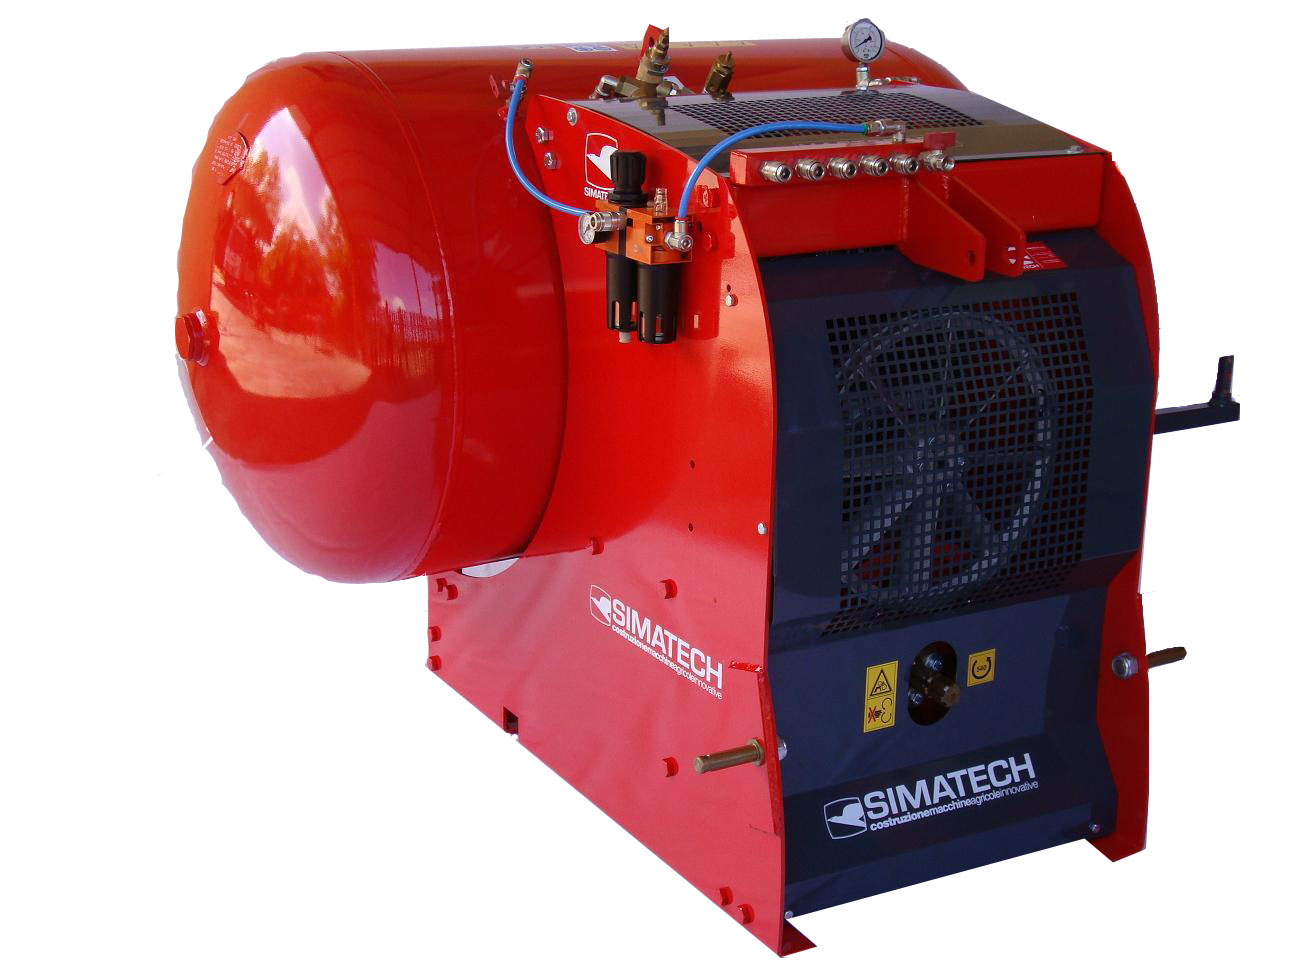 SIMATECH MASTER 650 COMPRESSOR 3 POINTS/TRAILER